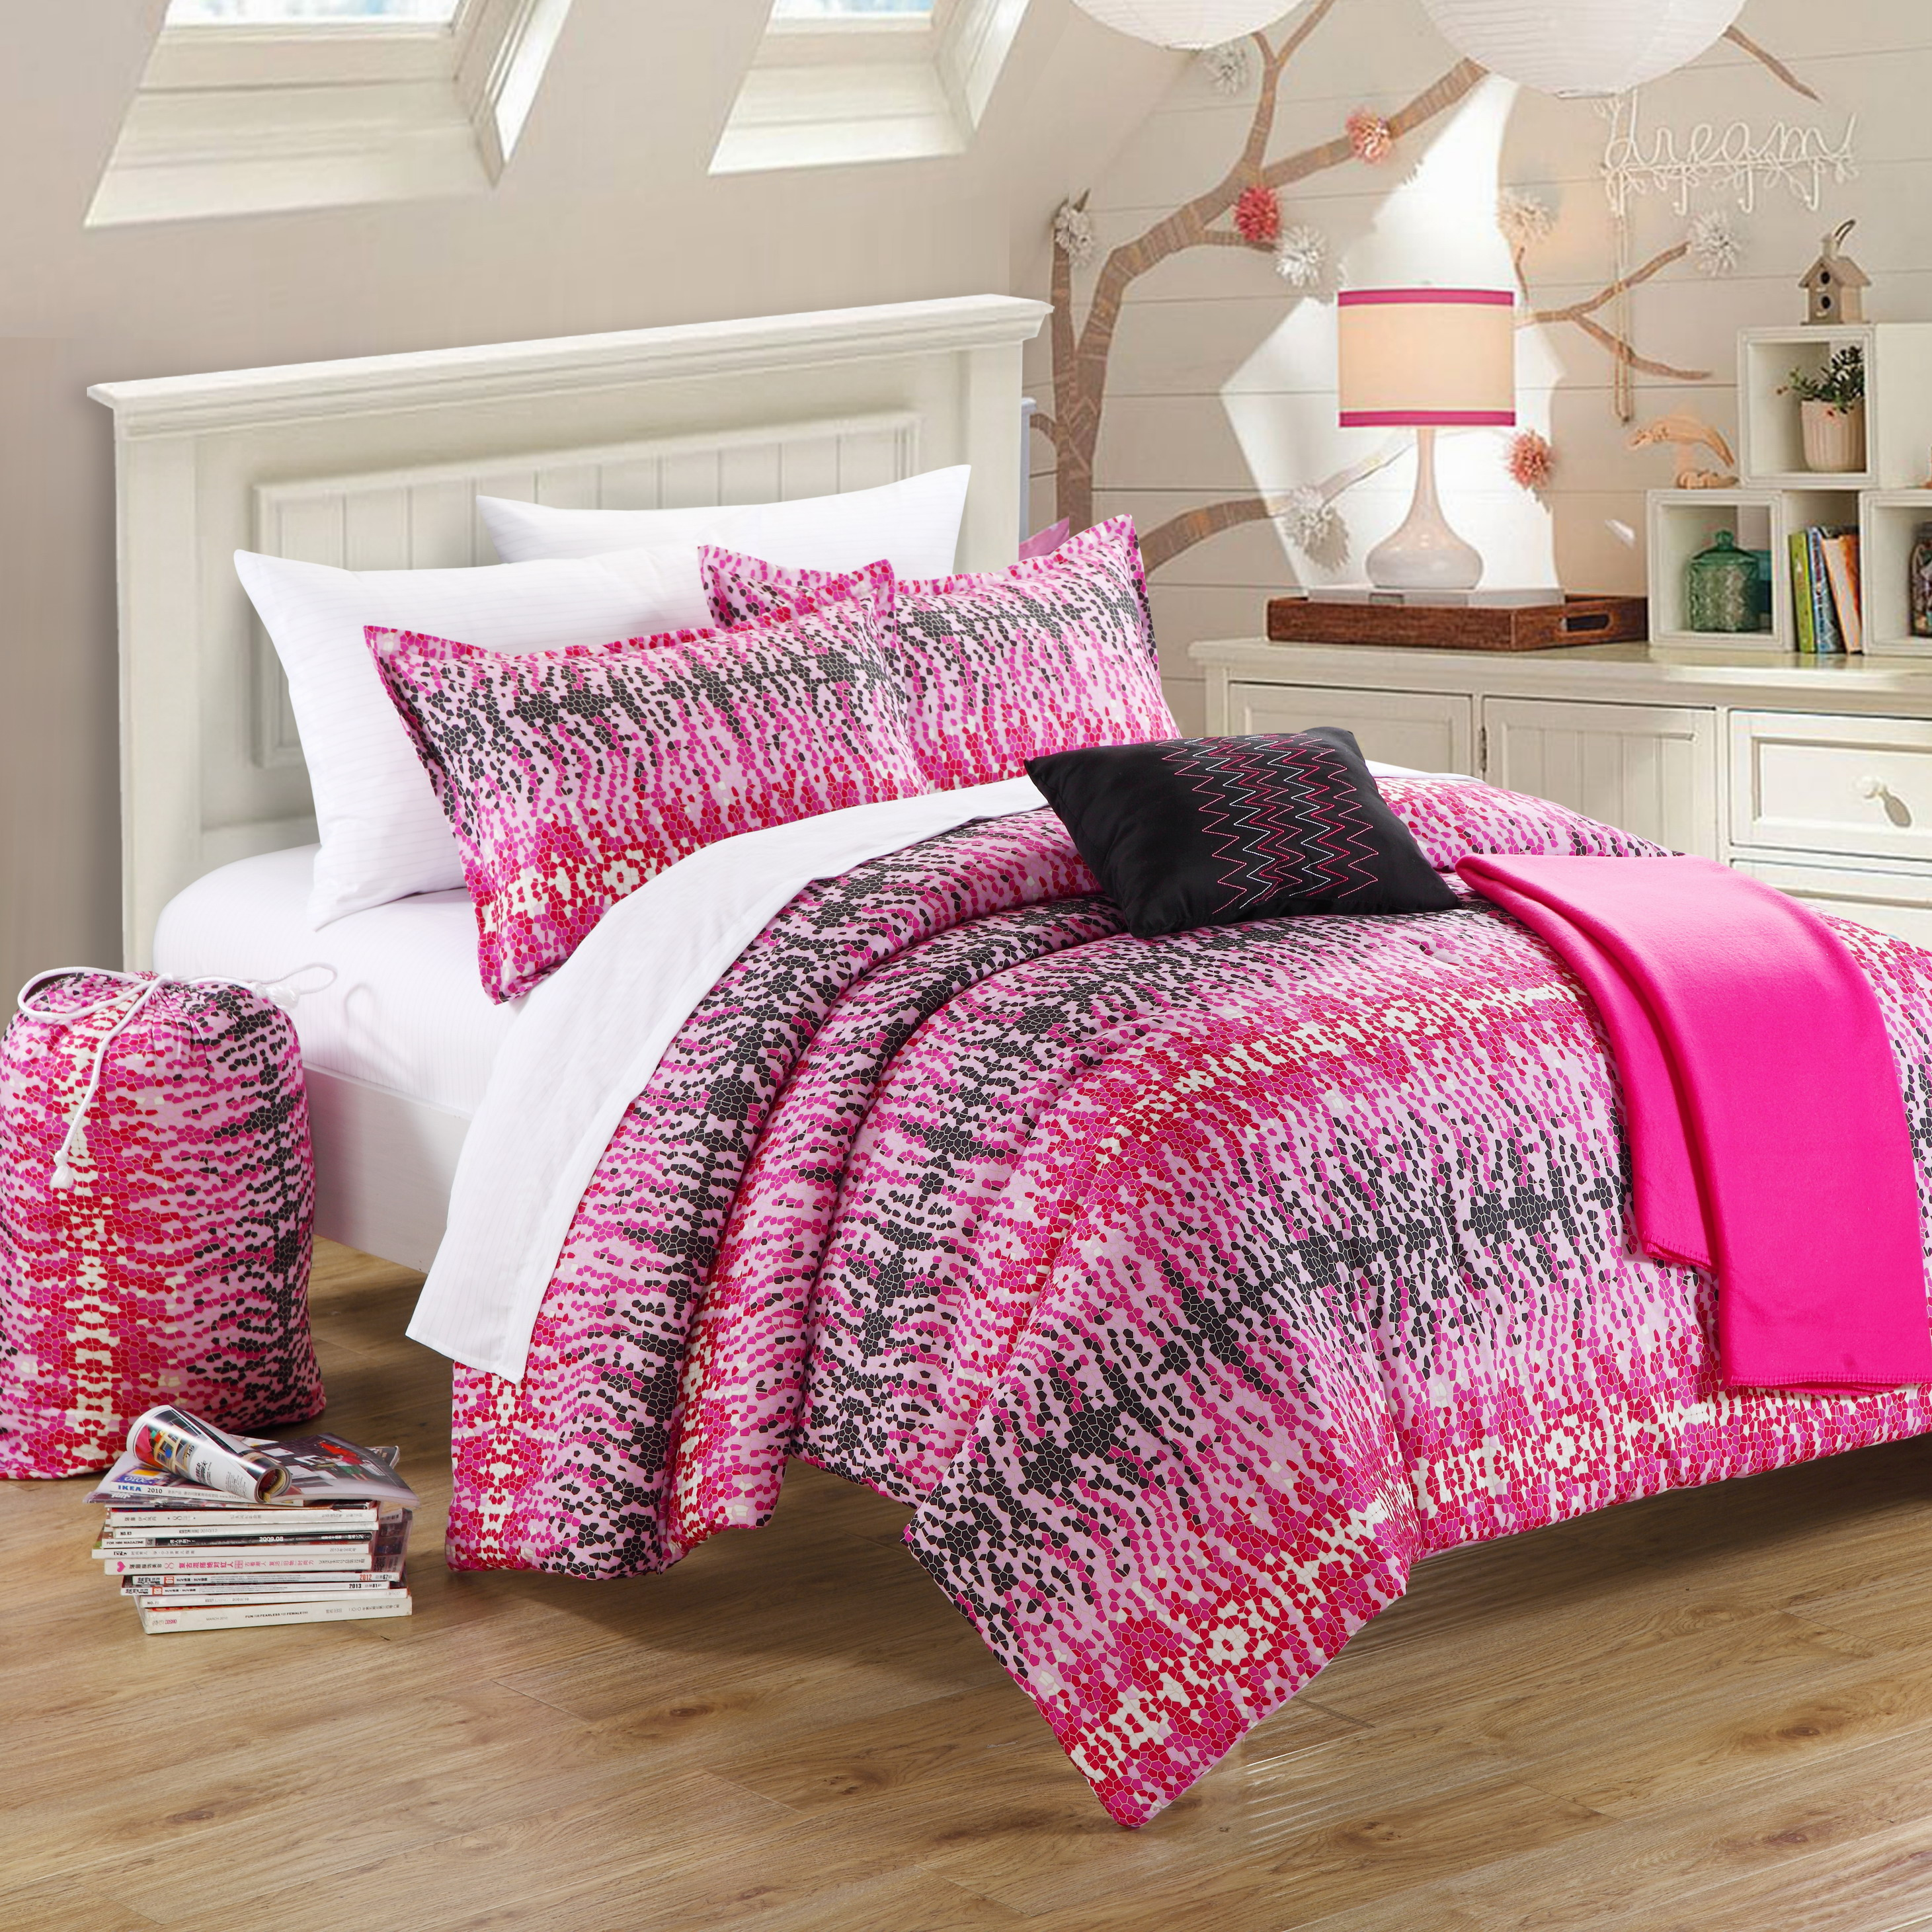 Chic Home Barbie 7-Piece Comforter Set